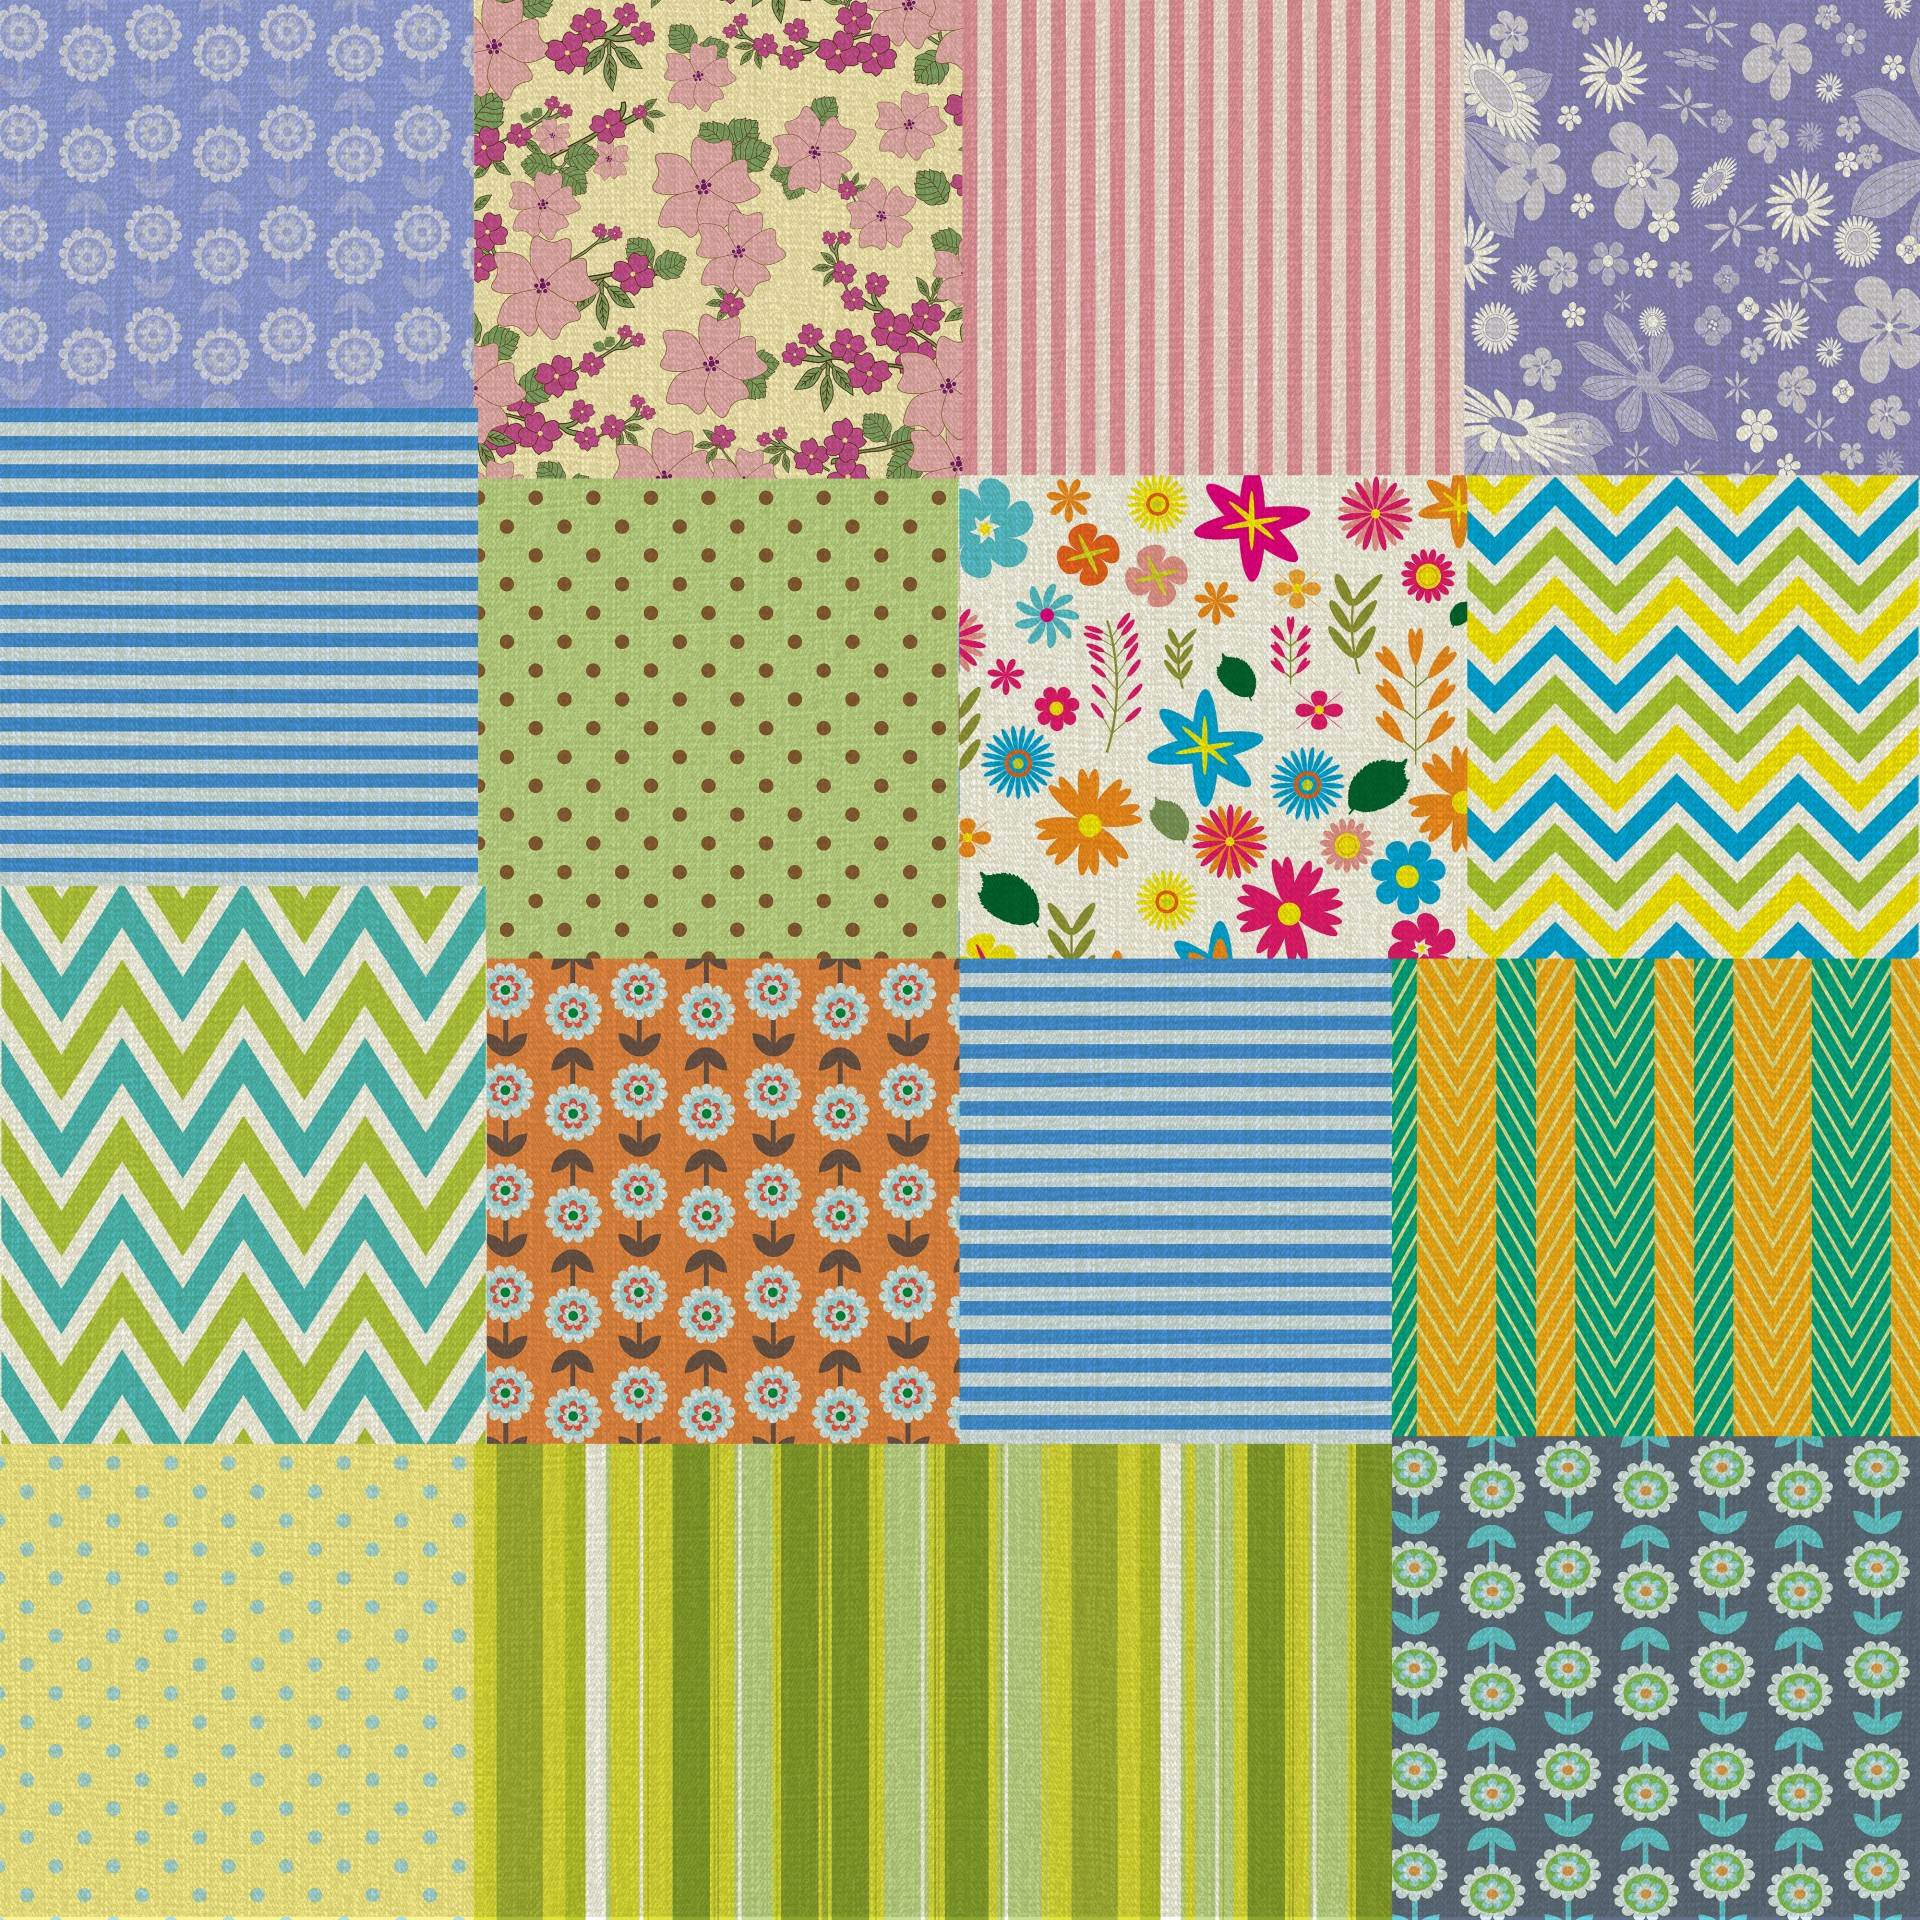 Patchwork clipart fabric patch Photo Background Domain Free Fabric